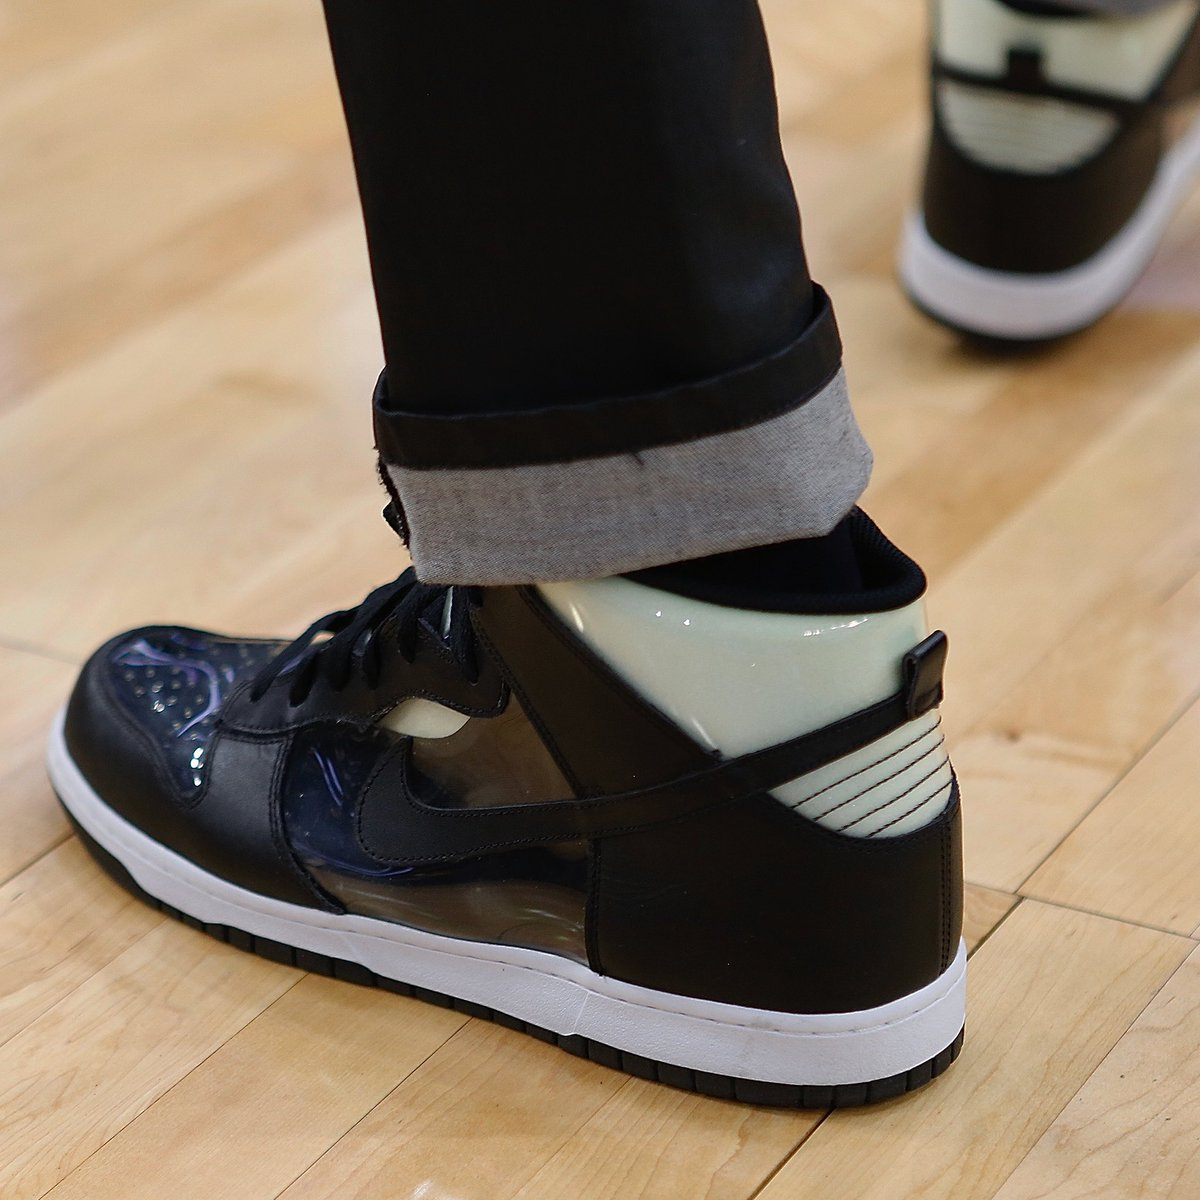 LeBron James on the bench in the Comme des Garçons x Nike Dunk Hi! #NBAKicks